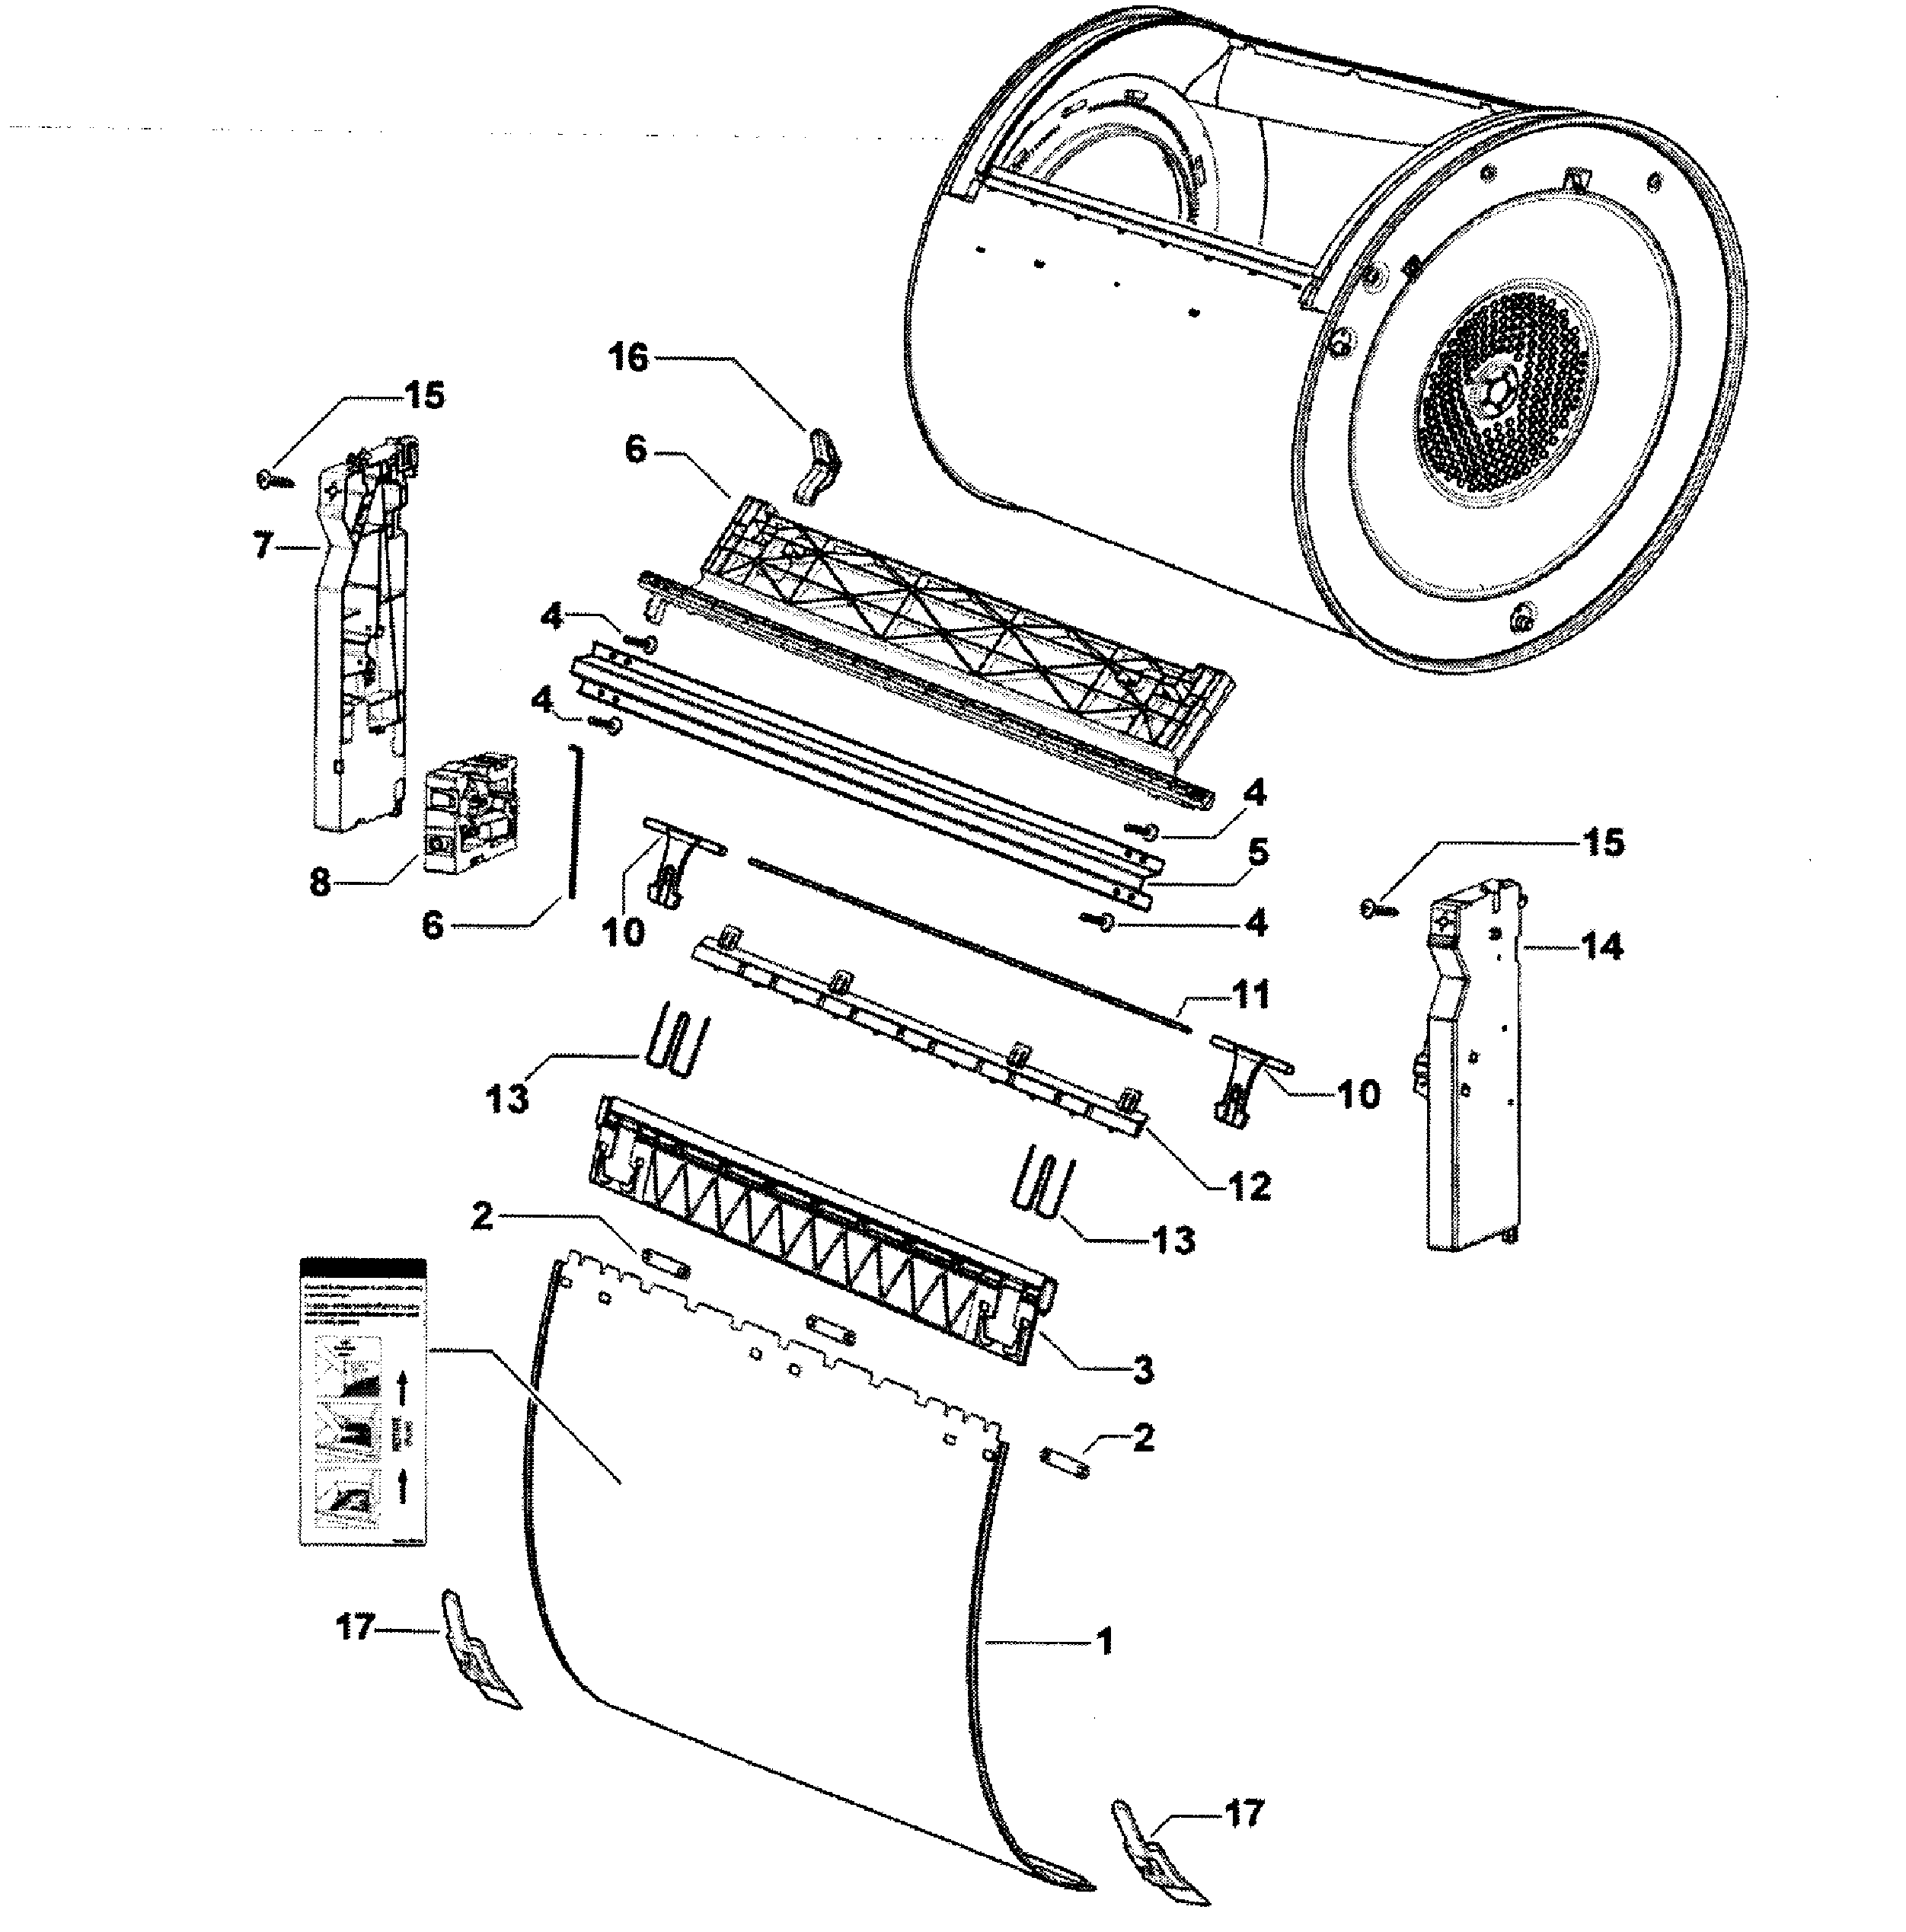 Fisher & Paykel DG62T27CW2-96170-A drum assy diagram